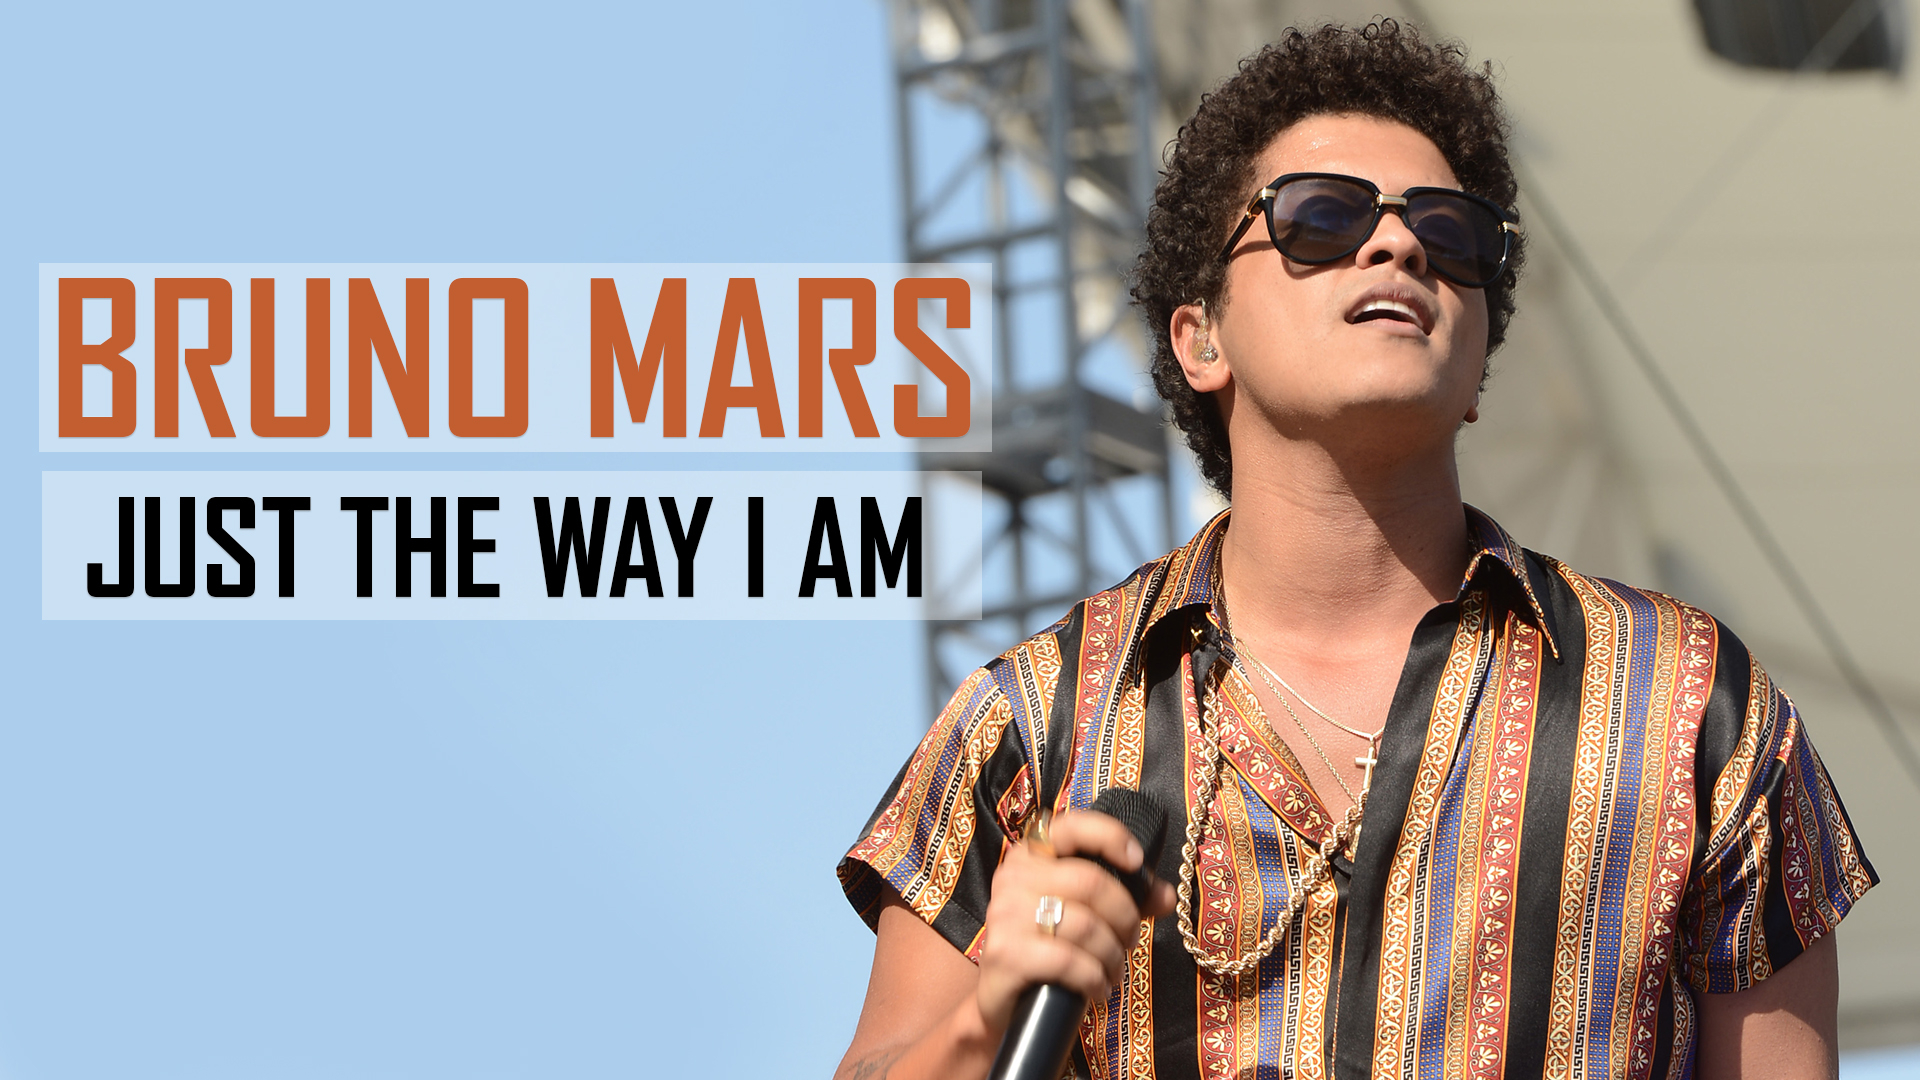 Bruno Mars: Just the Way I Am